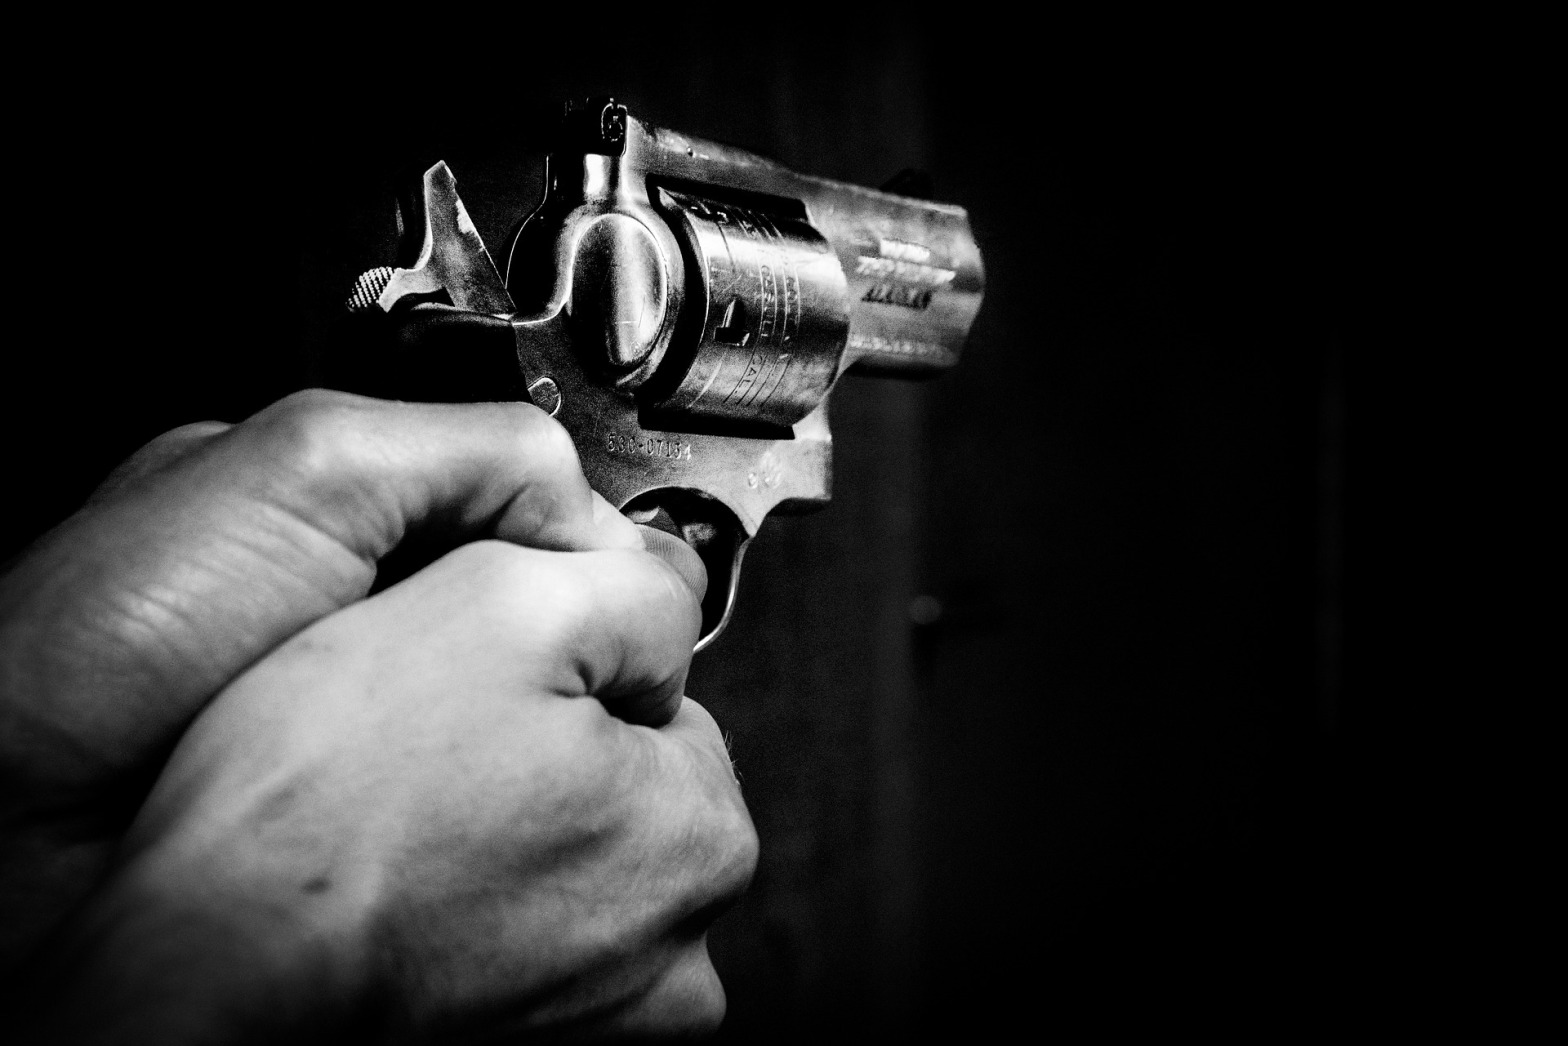 https://pixabay.com/en/gun-hands-black-weapon-man-crime-1678989/